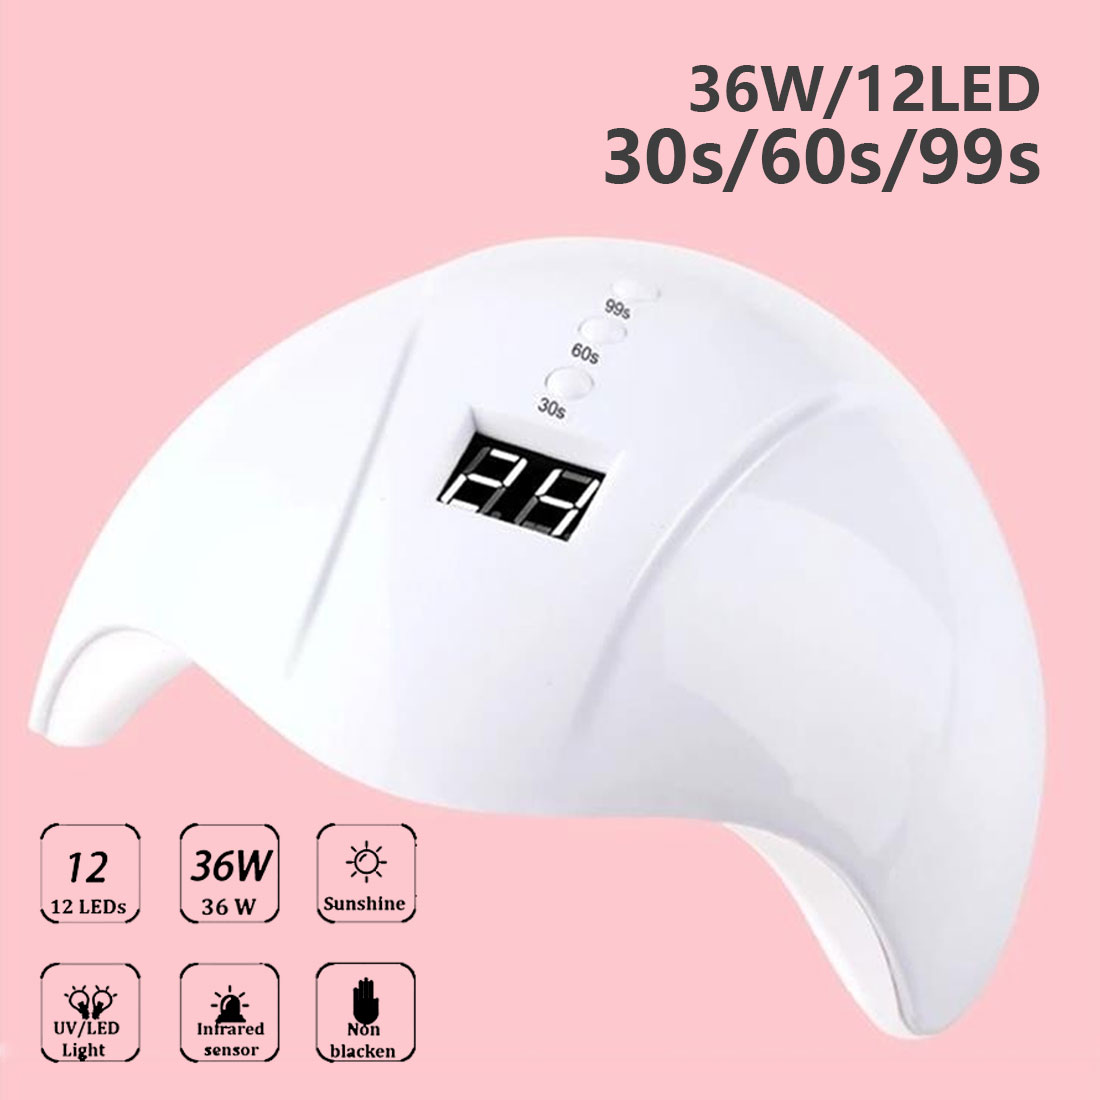 36/6W Nail Dryer For Nail Machine Curing 30s/60s/99s Timer For Nail <font><b>LED</b></font> <font><b>UV</b></font> Lamp For All Gels 12/3 <font><b>Leds</b></font> <font><b>UV</b></font> Lamp USB Connector image